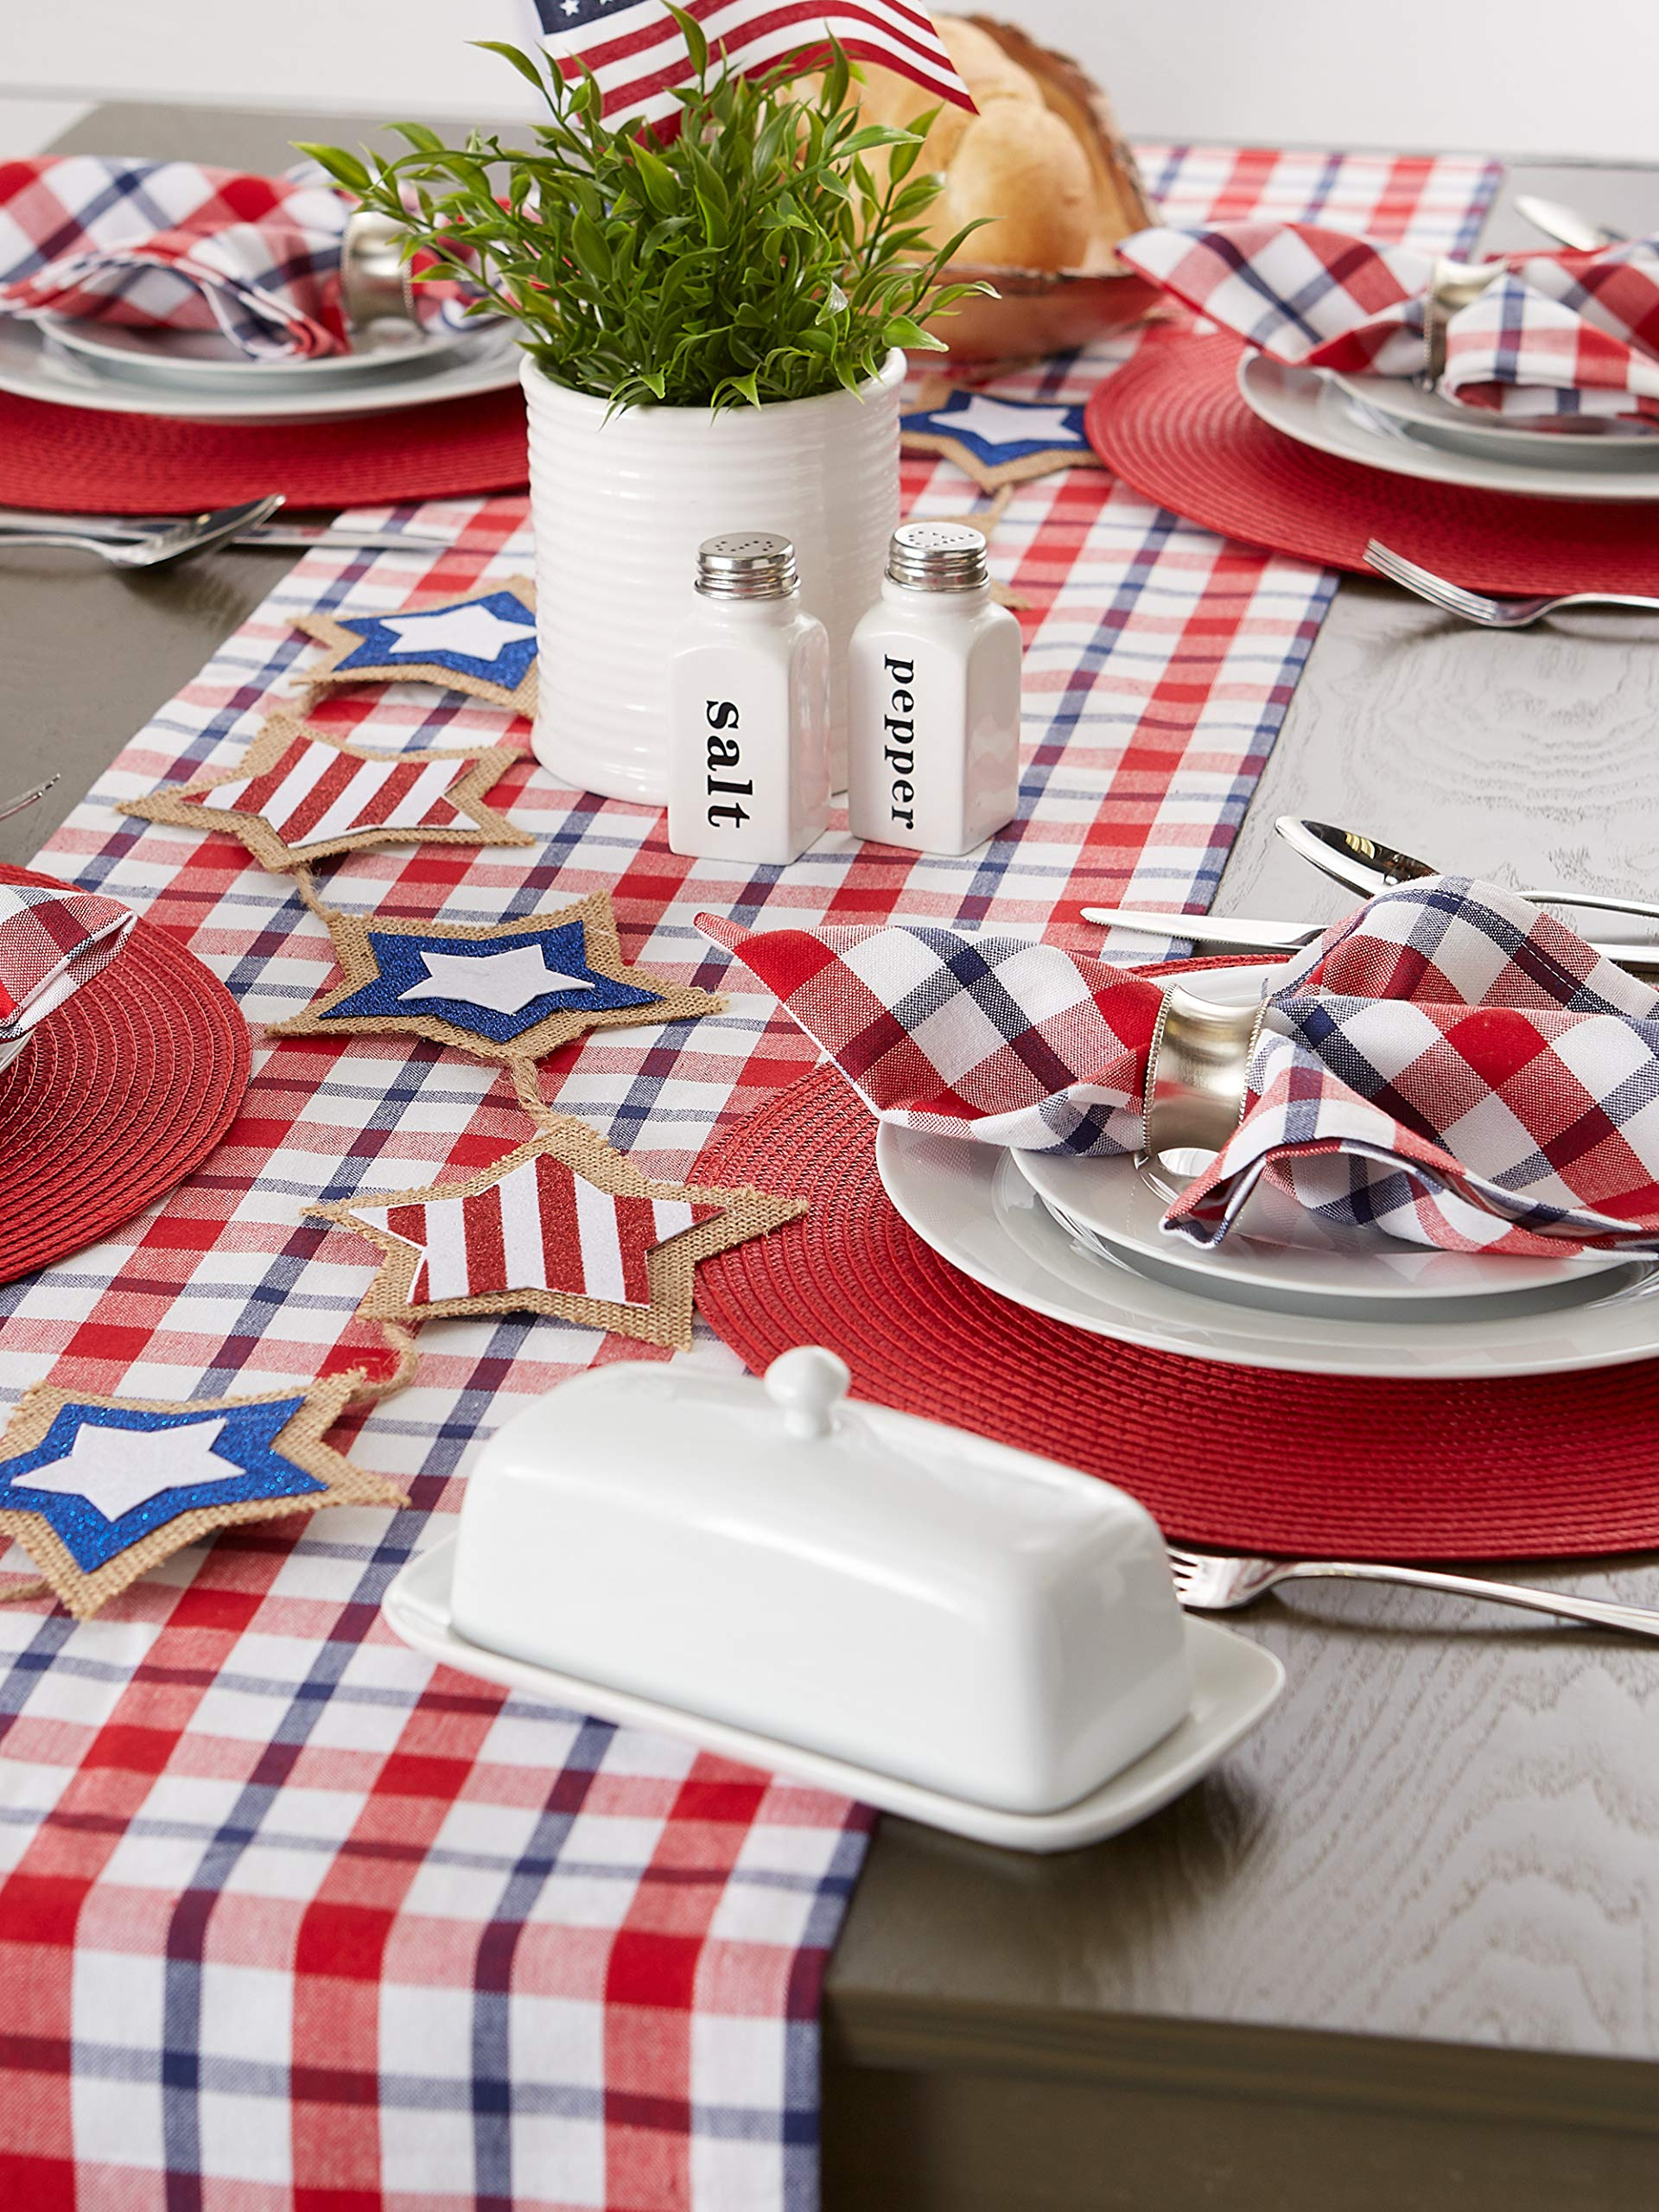 Dii Classic Round Placemats 15 Diameter Red Camz76069 Buy Online At Best Price In Uae Amazon Ae